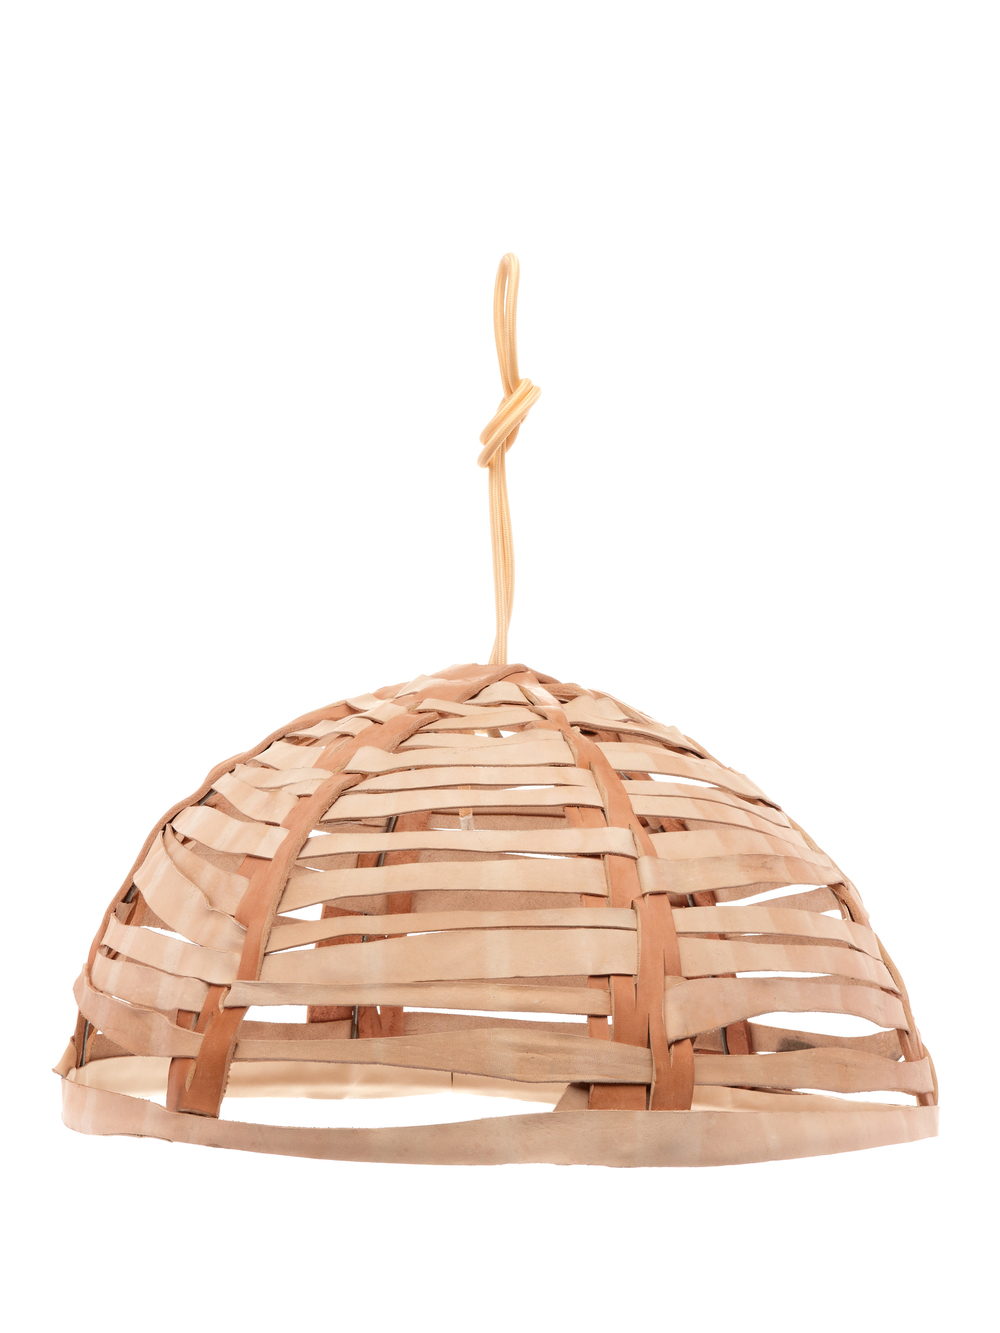 Woven Leather Pendant Light Shade  sc 1 st  All Hands & Woven Leather Pendant Light Shade u2014 ALL HANDS azcodes.com